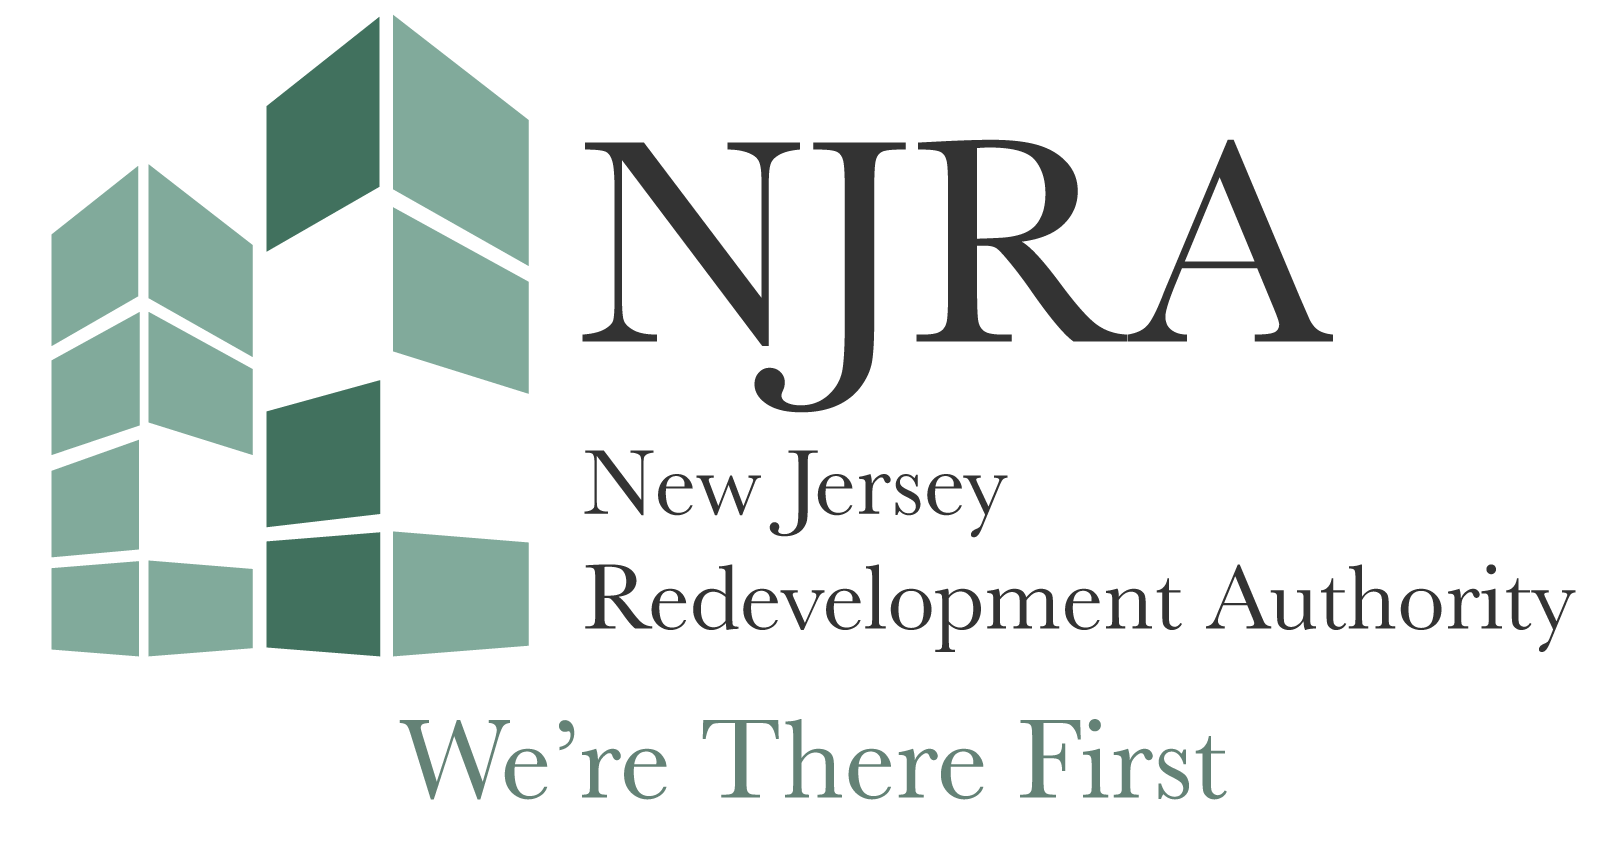 New JErsey Redevelopment Authority logo